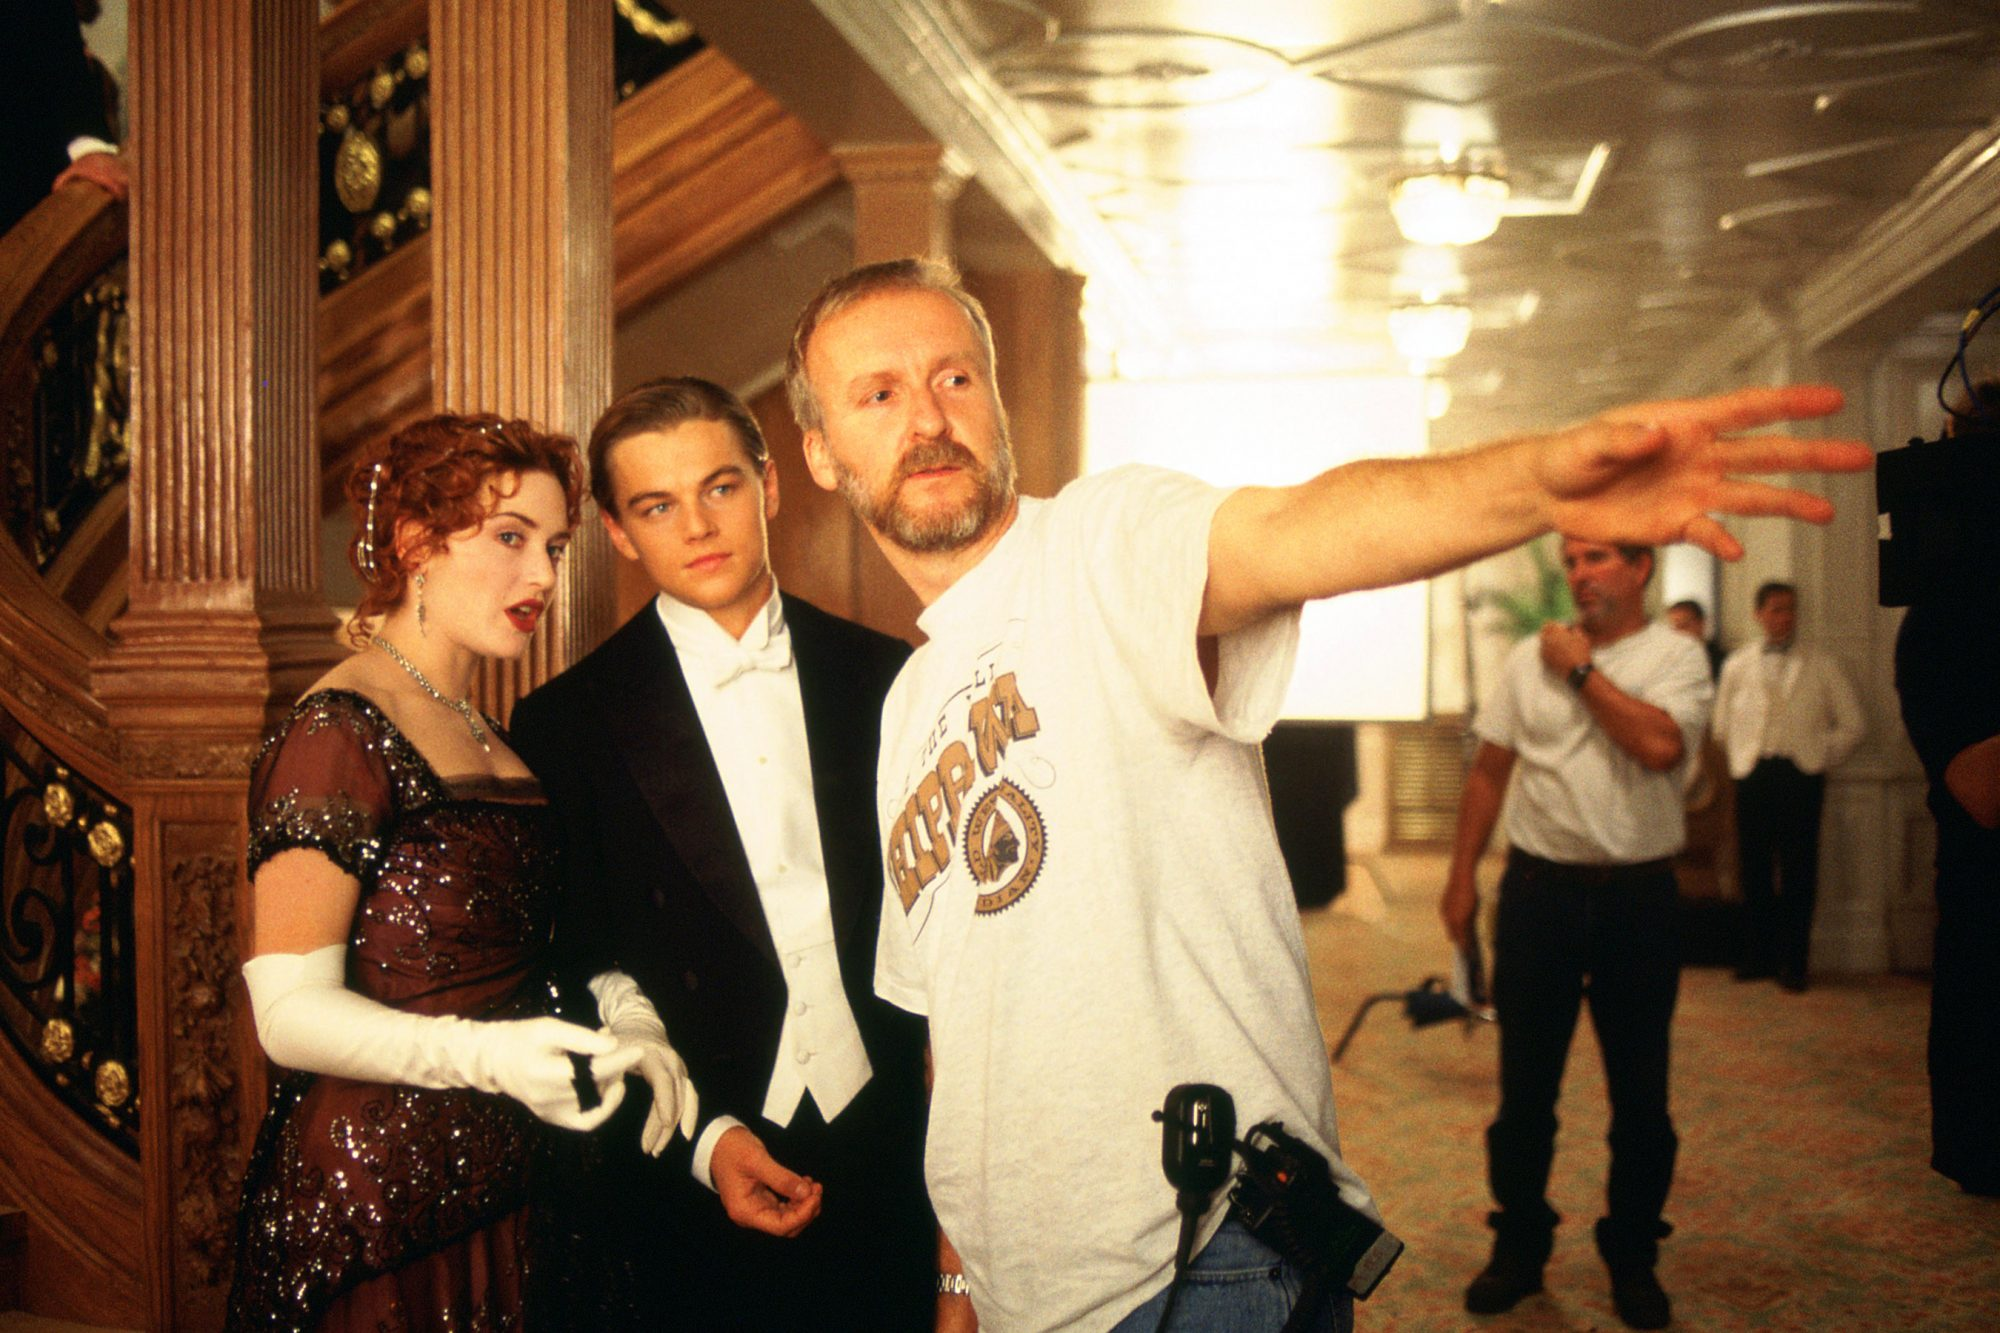 TITANIC, Kate Winslet, Leonardo Di Caprio, director James Cameron, 1997, TM and Copyright (c) 20th C